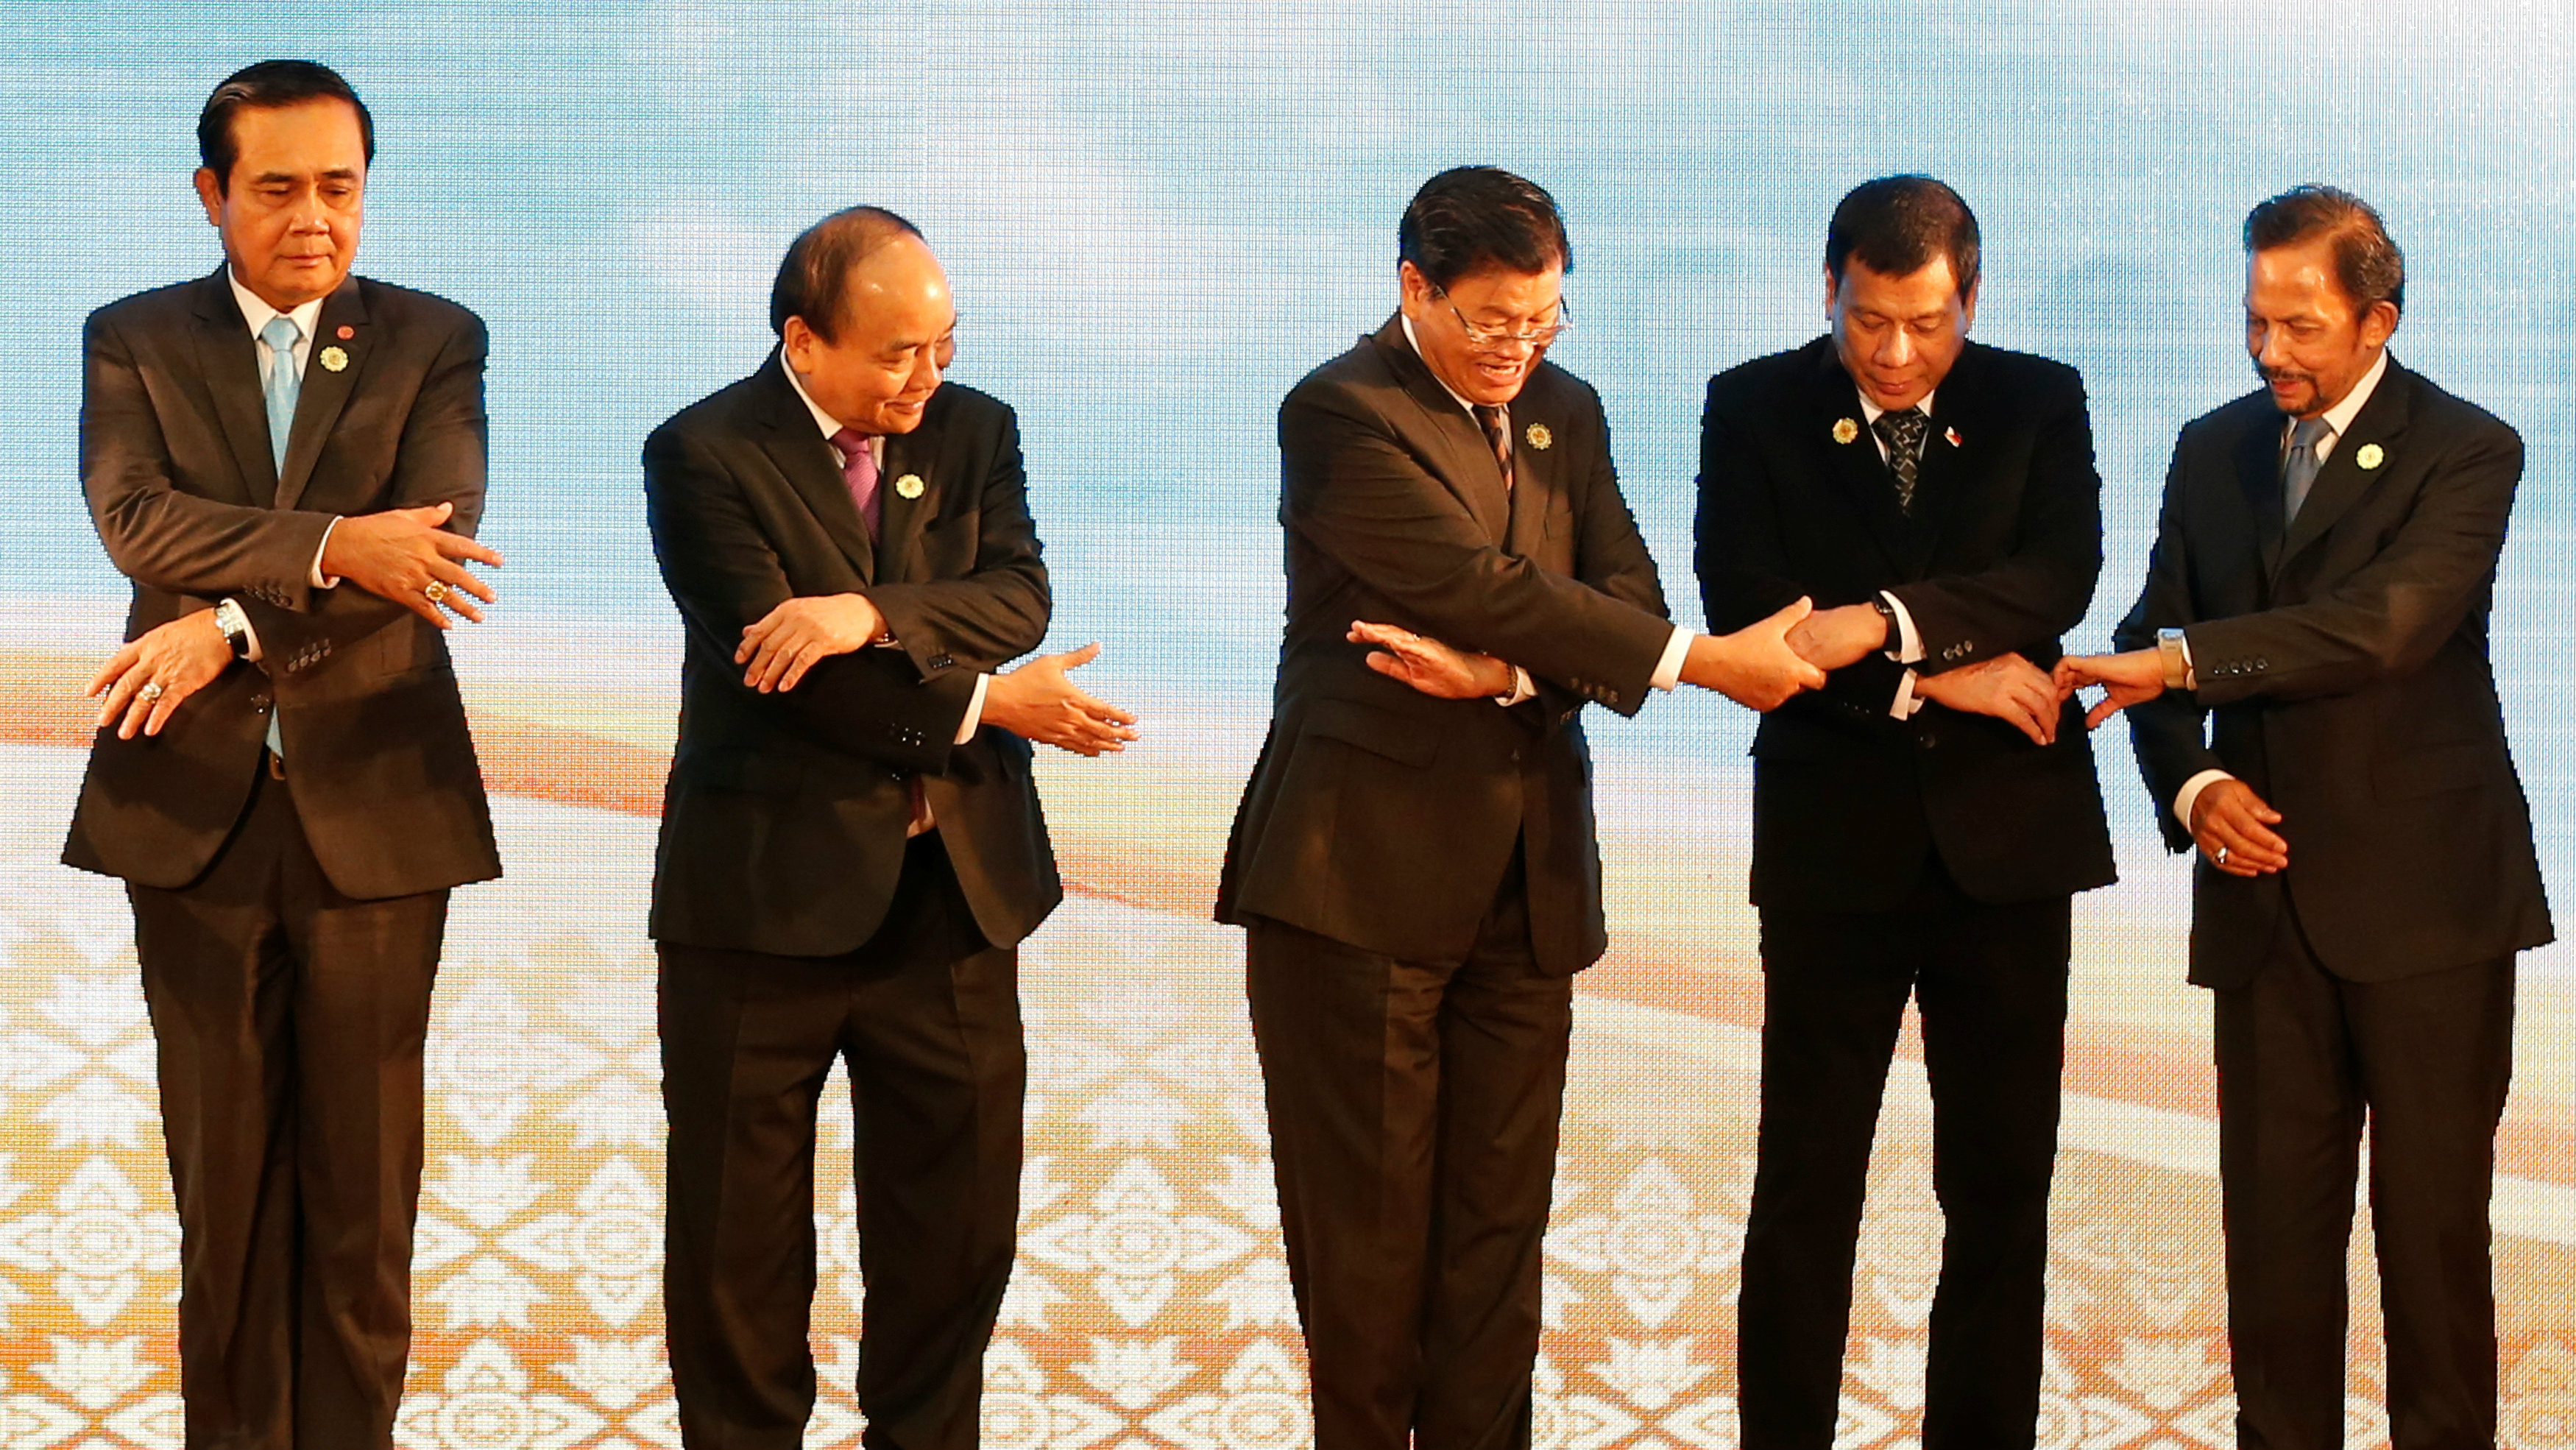 (L to R) Thailand's Prime Minister General Prayuth Chano-cha, Vietnamese Prime Minister Nguyen Xuan Phuc, Laos Prime Minister Thongloun Sisoulith, Philippines President Rodrigo Duterte and Brunei's Sultan Hassanal Bolkiah pose for photo during ASEAN Summit in Vientiane, Laos September 7, 2016. REUTERS/Soe Zeya Tun